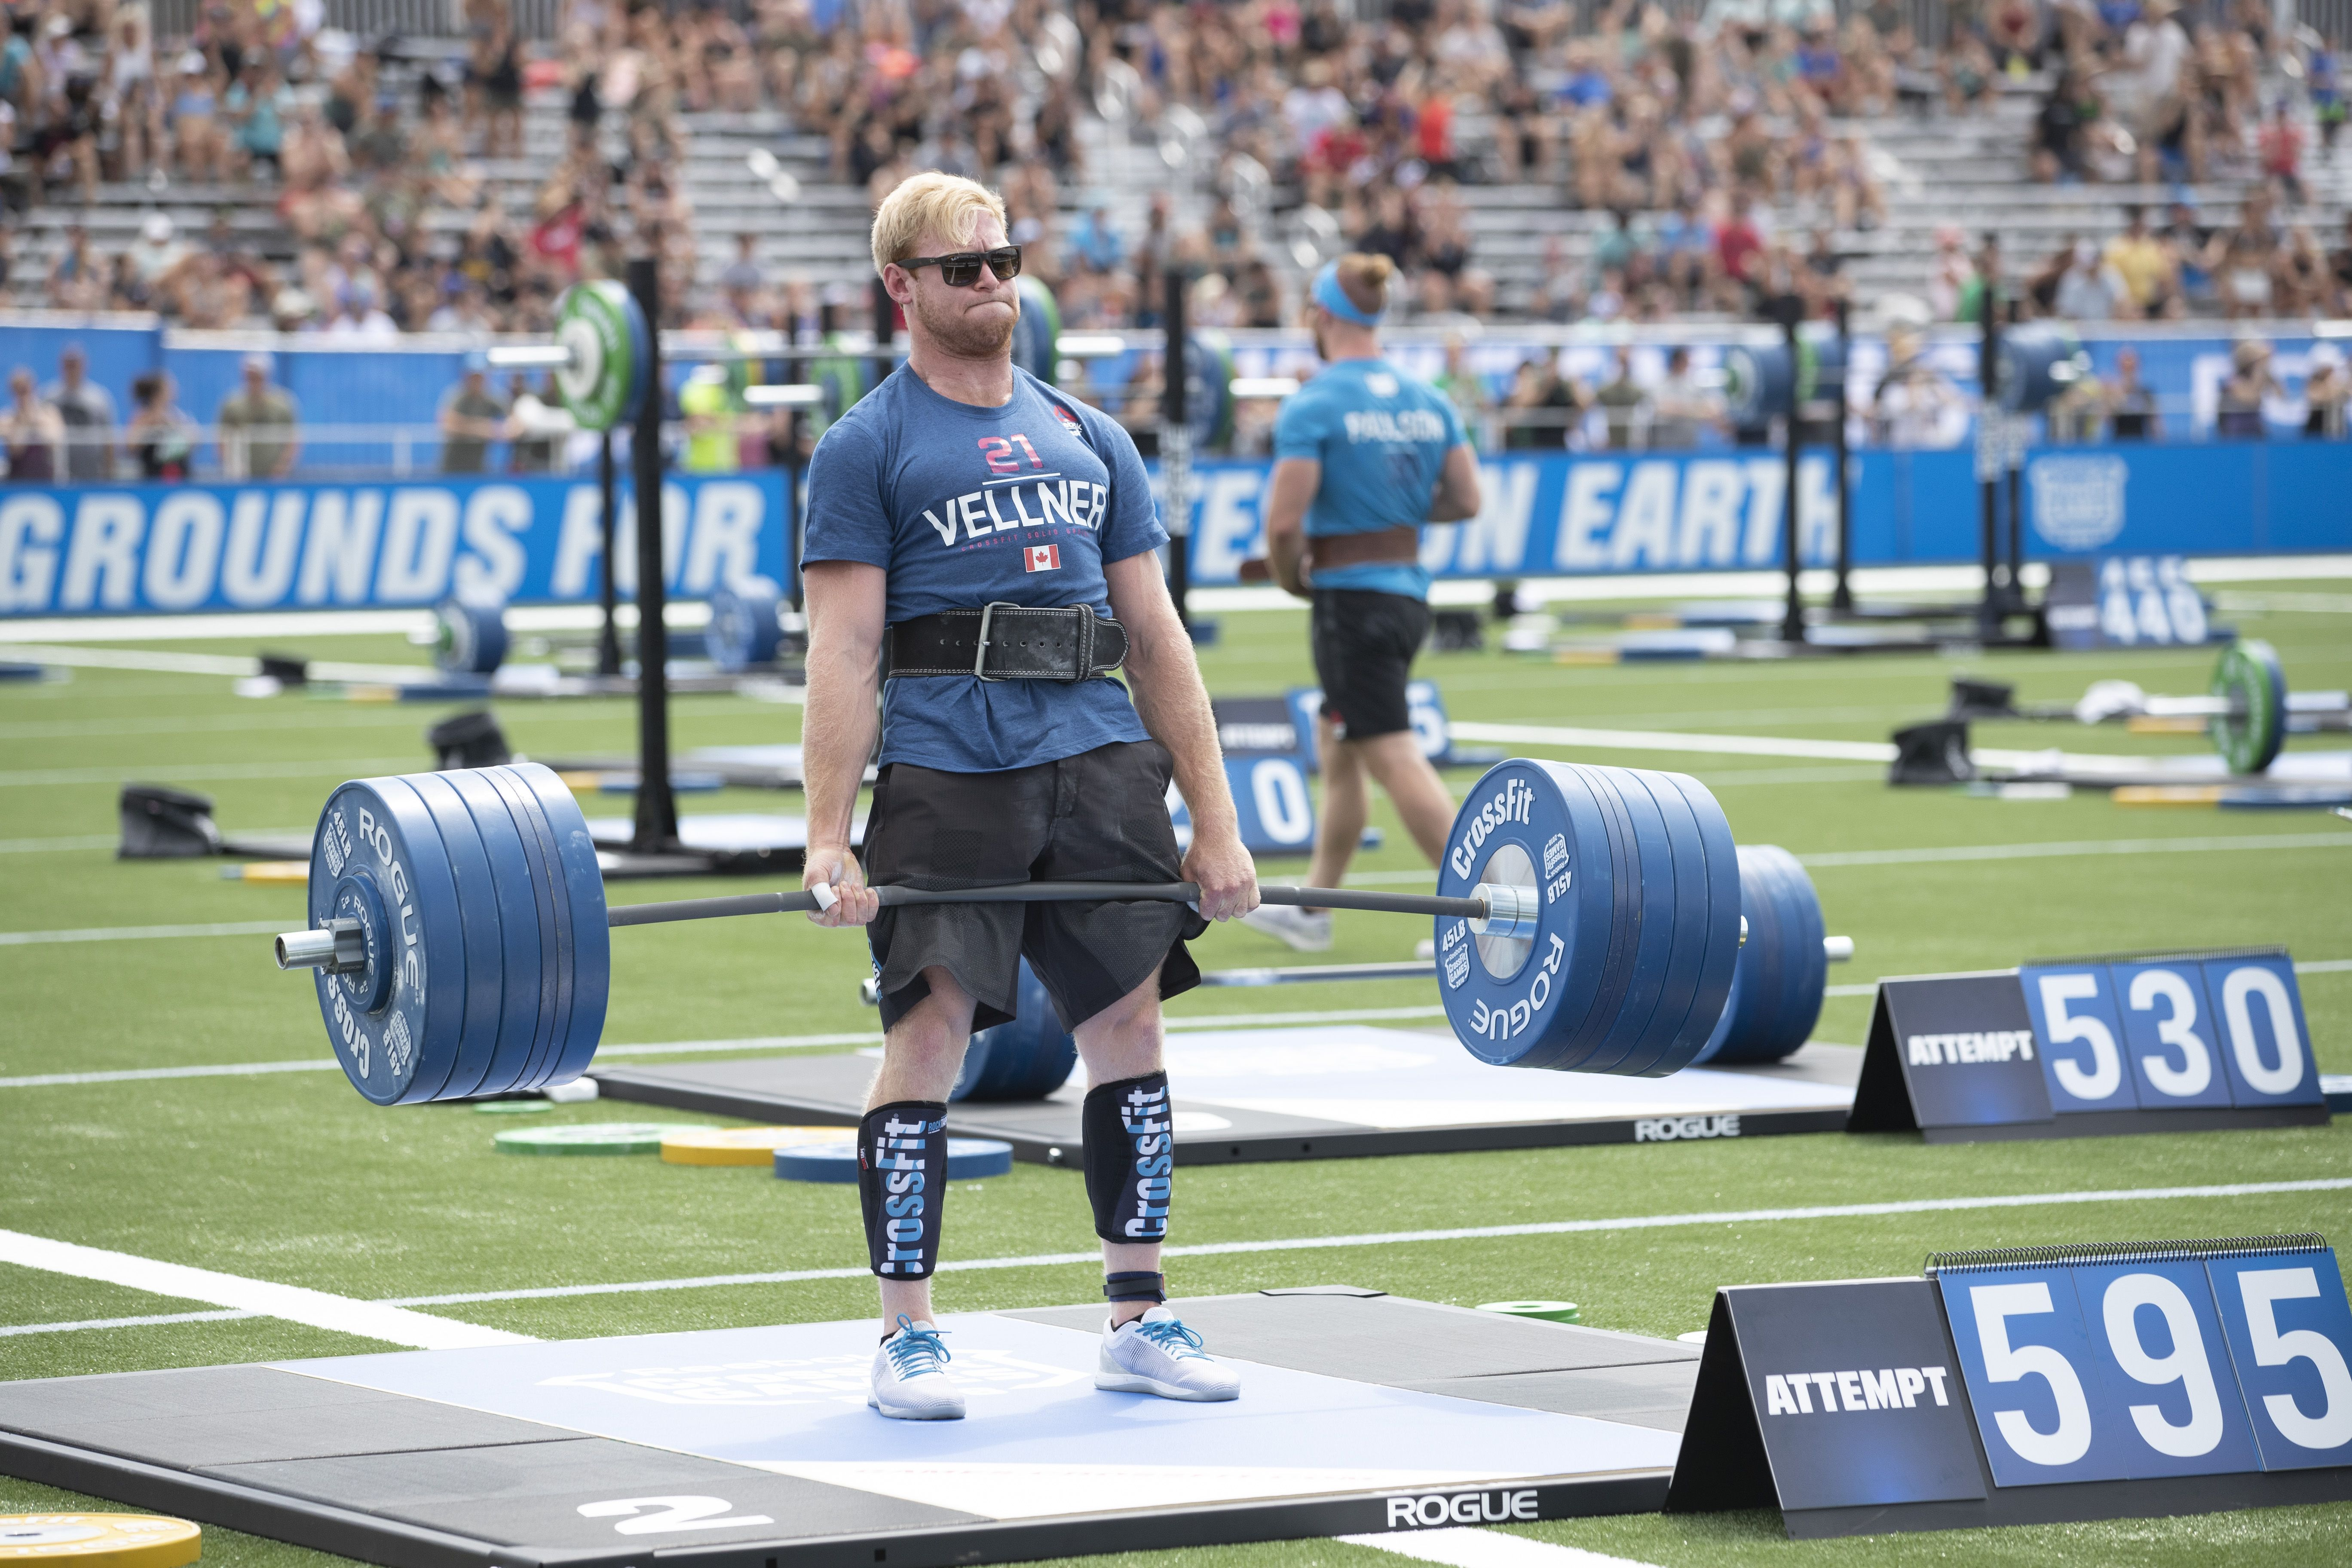 5 Tips For Max Strength From One of CrossFit's Strongest Men